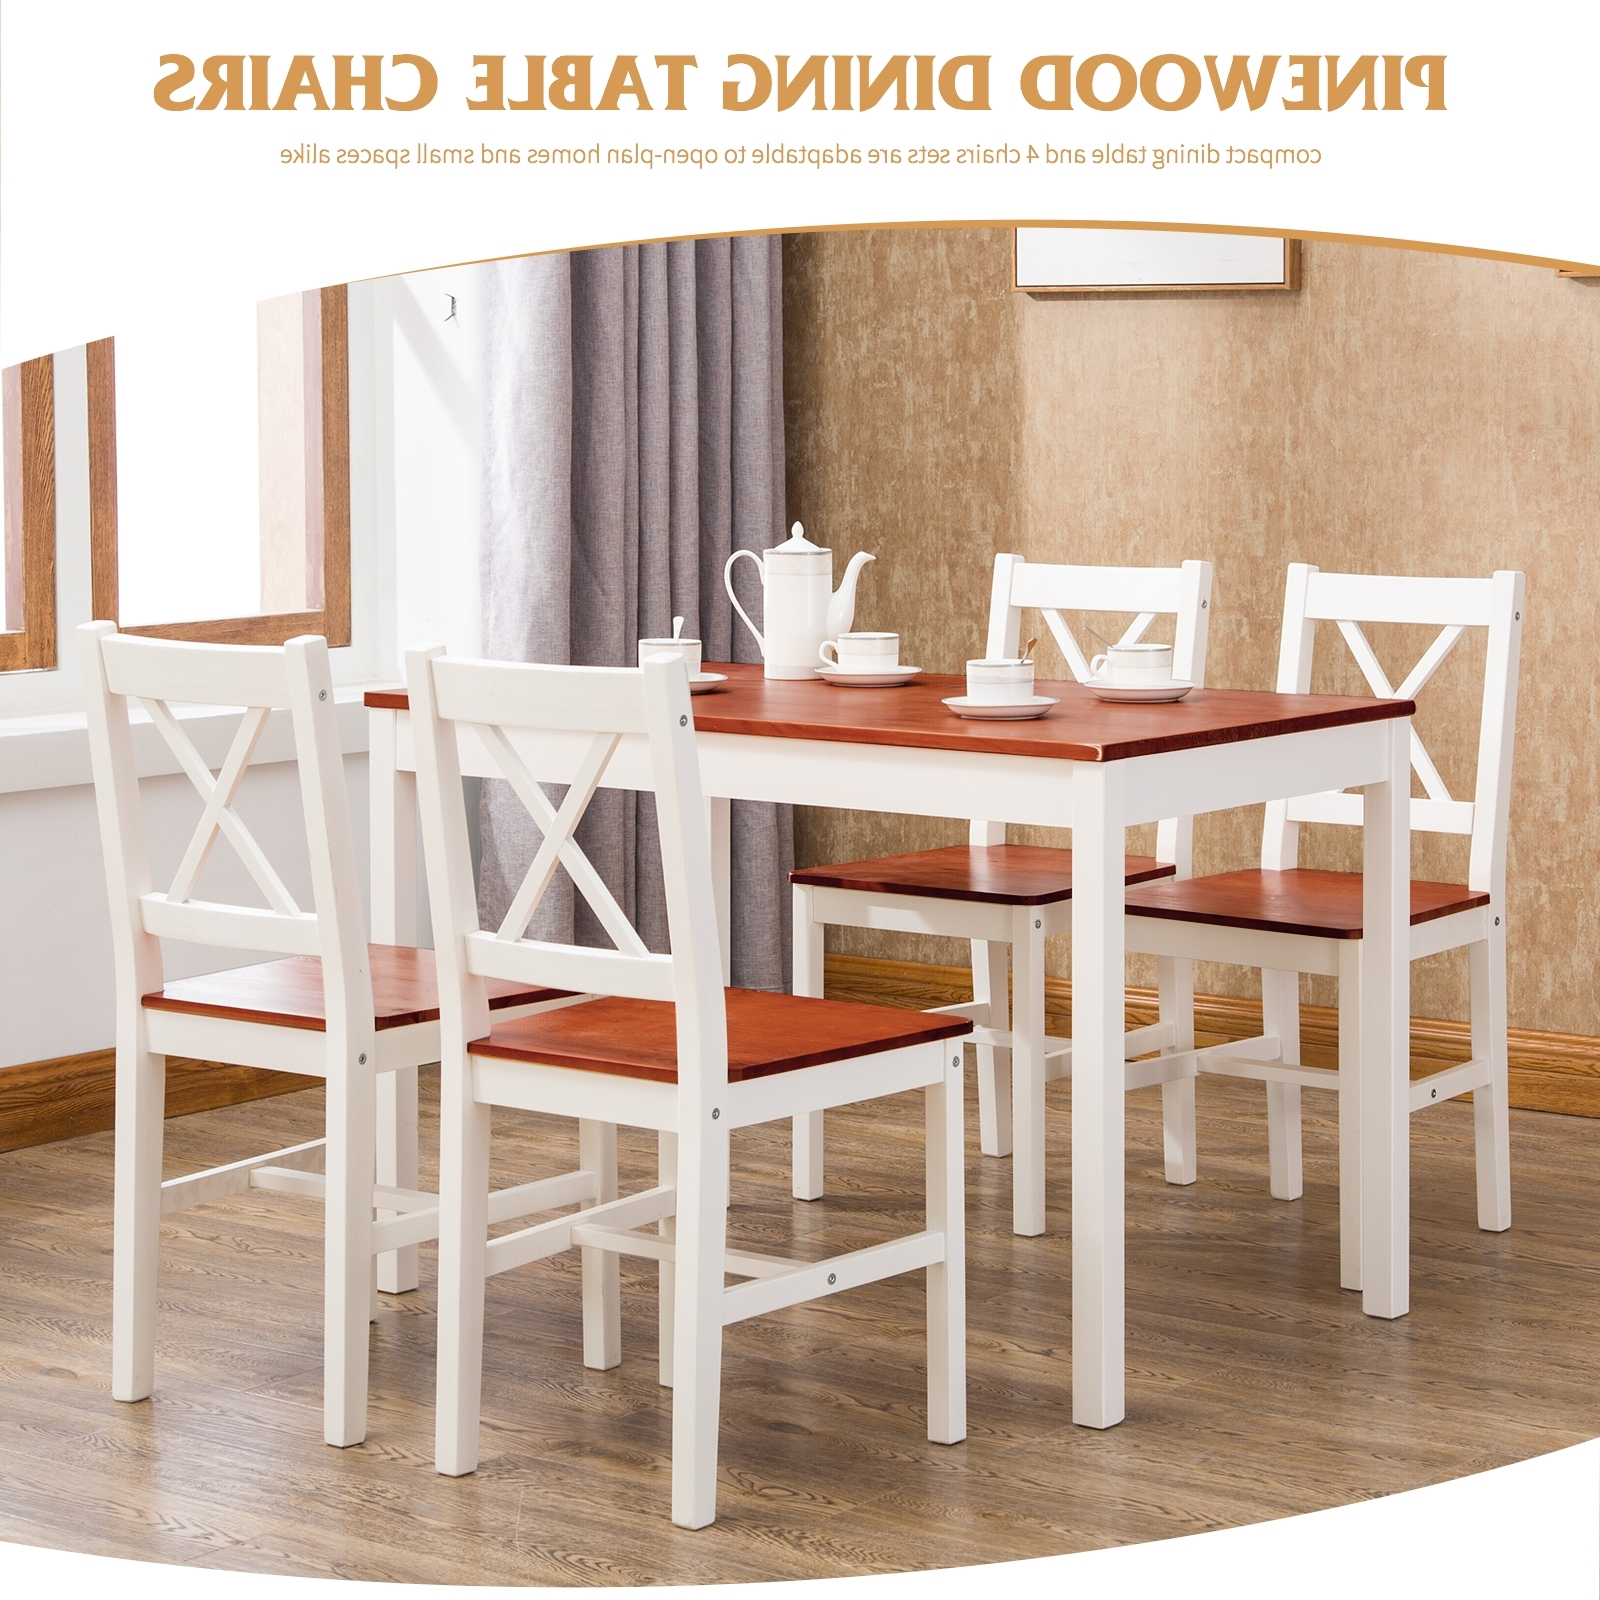 Famous 5 Pcs Pine Wood Dining Table And Chairs Set Kitchen Dining Room Regarding Dining Tables And Chairs Sets (View 12 of 25)